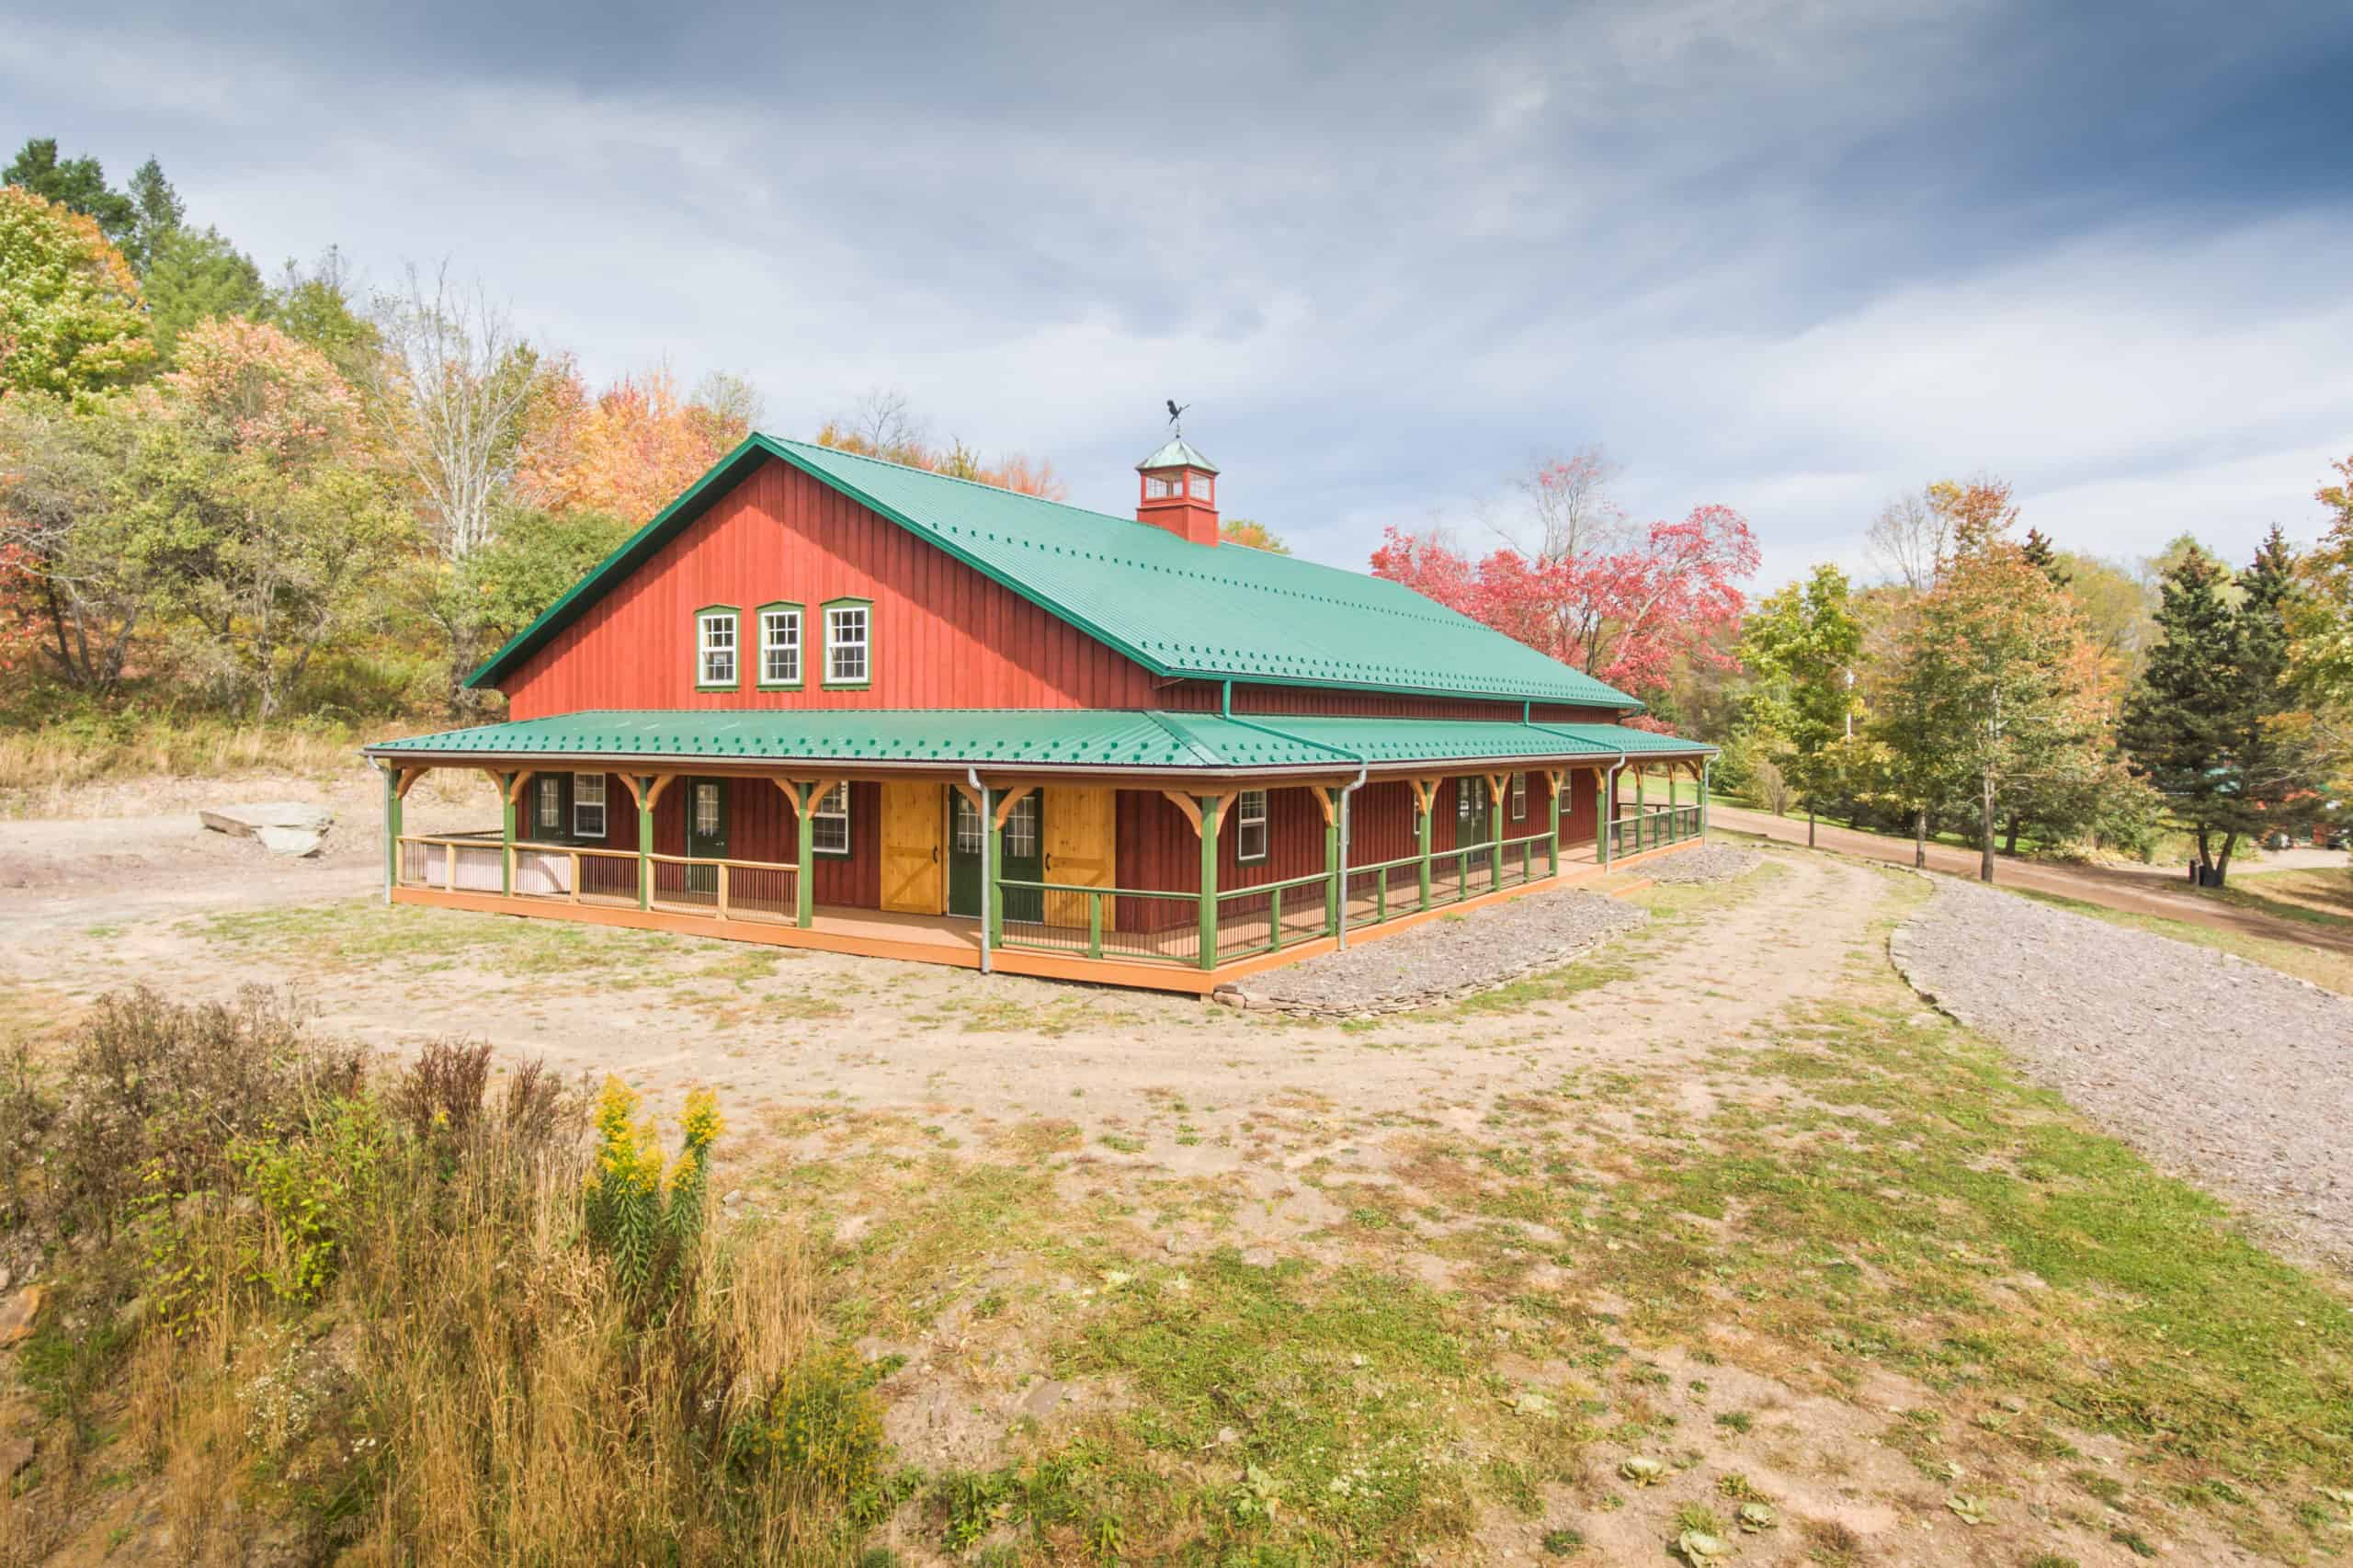 party barn red barn green roof fall leaves